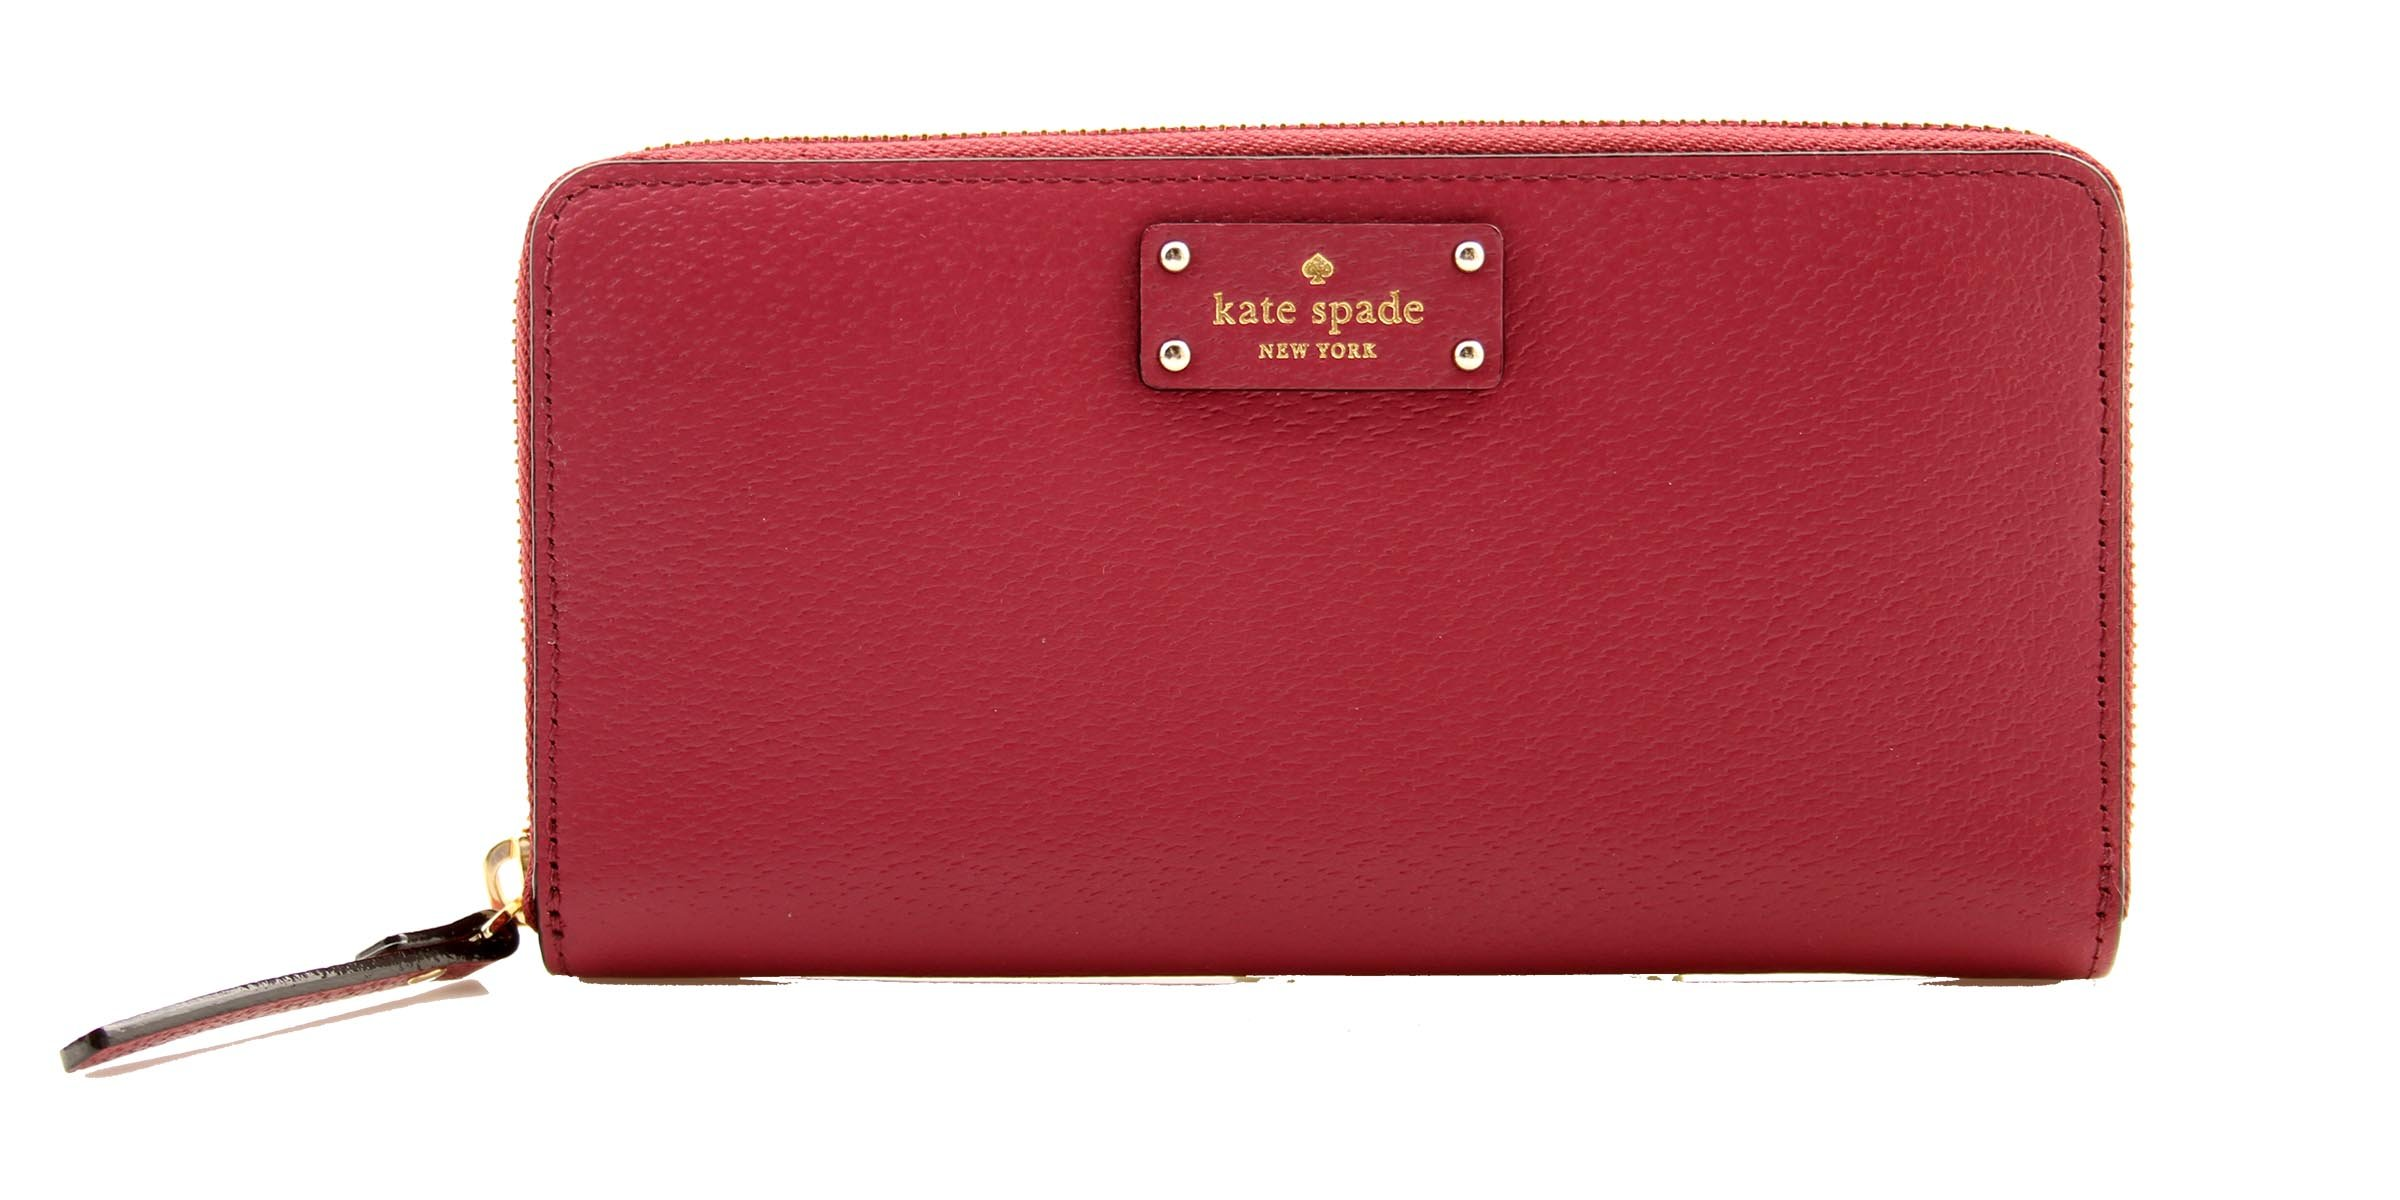 KATE SPADE Grove Street Neda Zip Around Wallet, WLRU2820